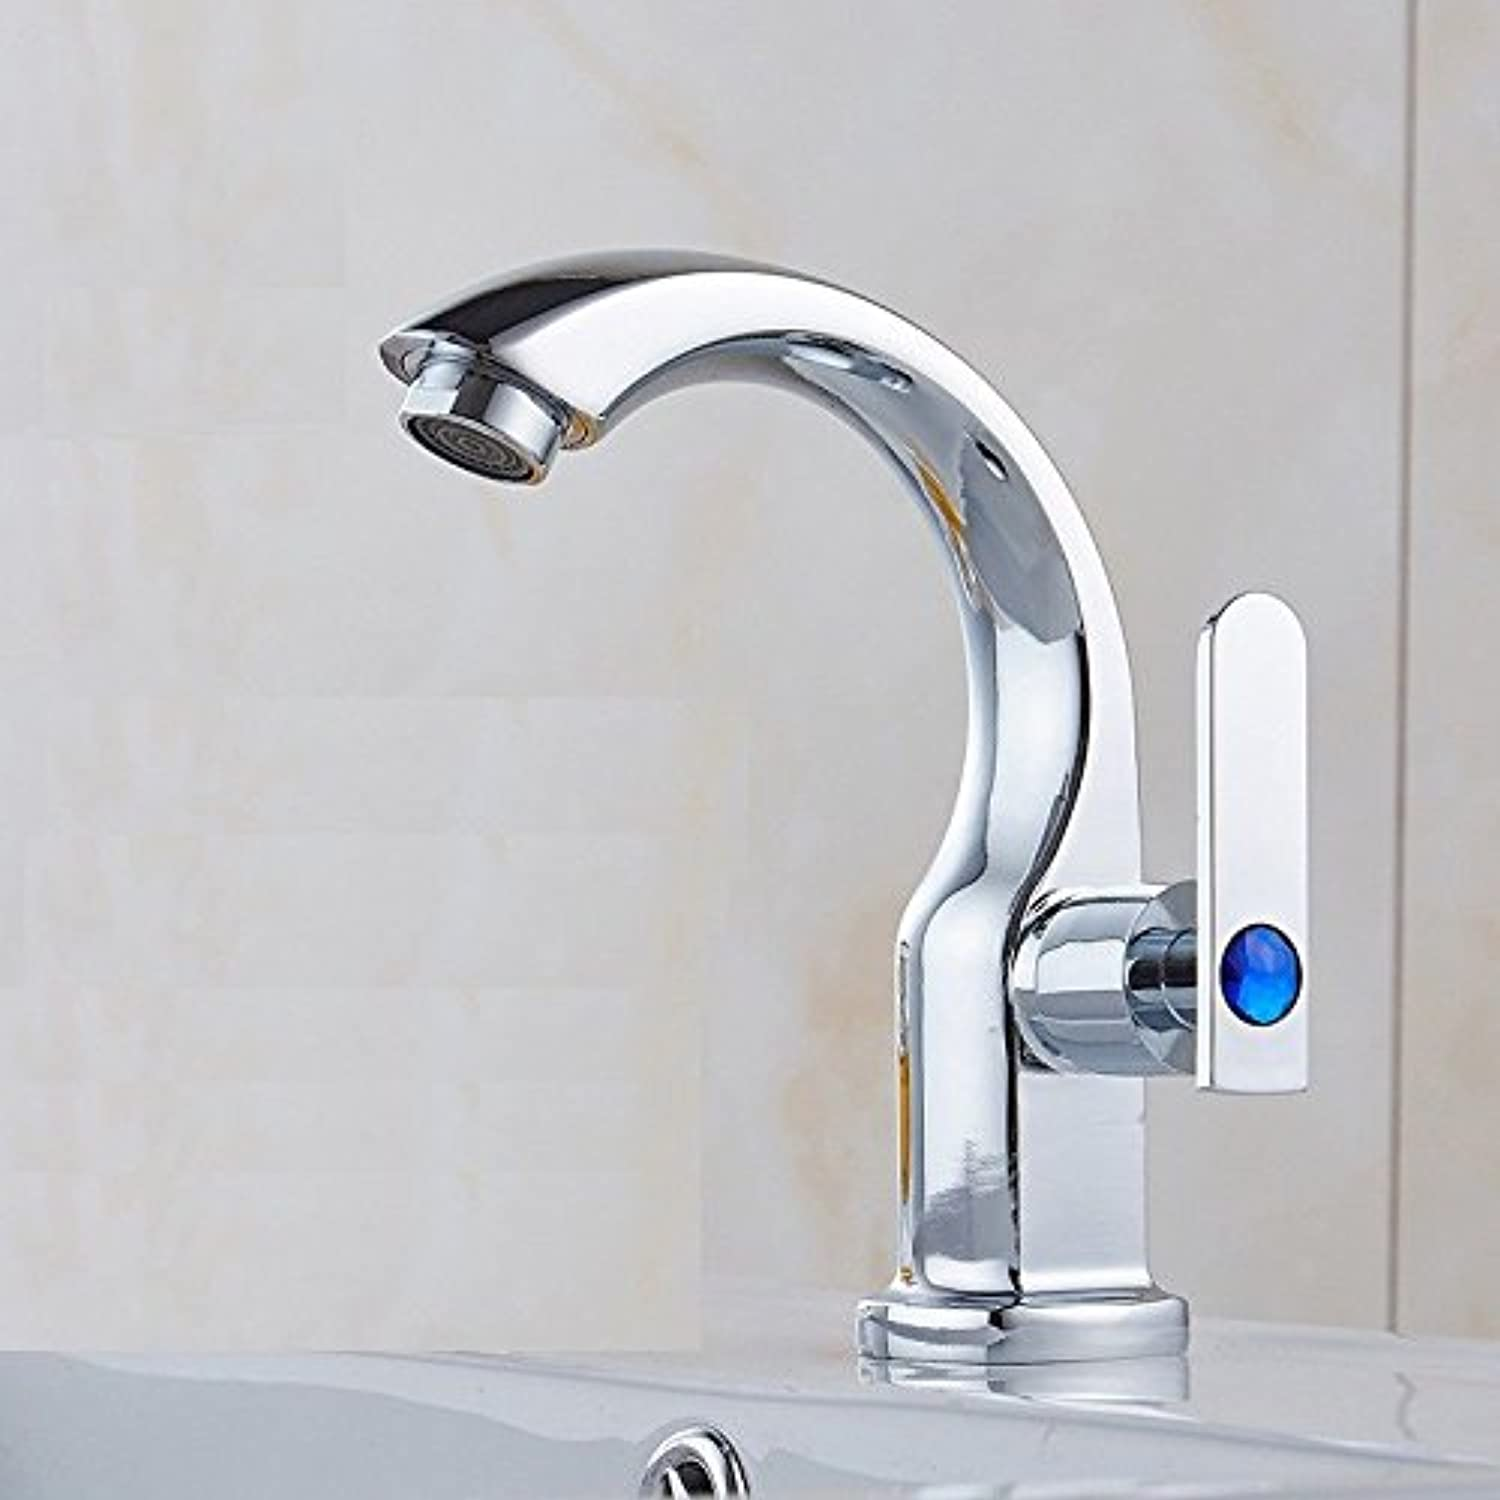 ETERNAL QUALITY Bathroom Sink Basin Tap Brass Mixer Tap Washroom Mixer Faucet The water valve single cold basin Faucet Kitchen Sink Taps